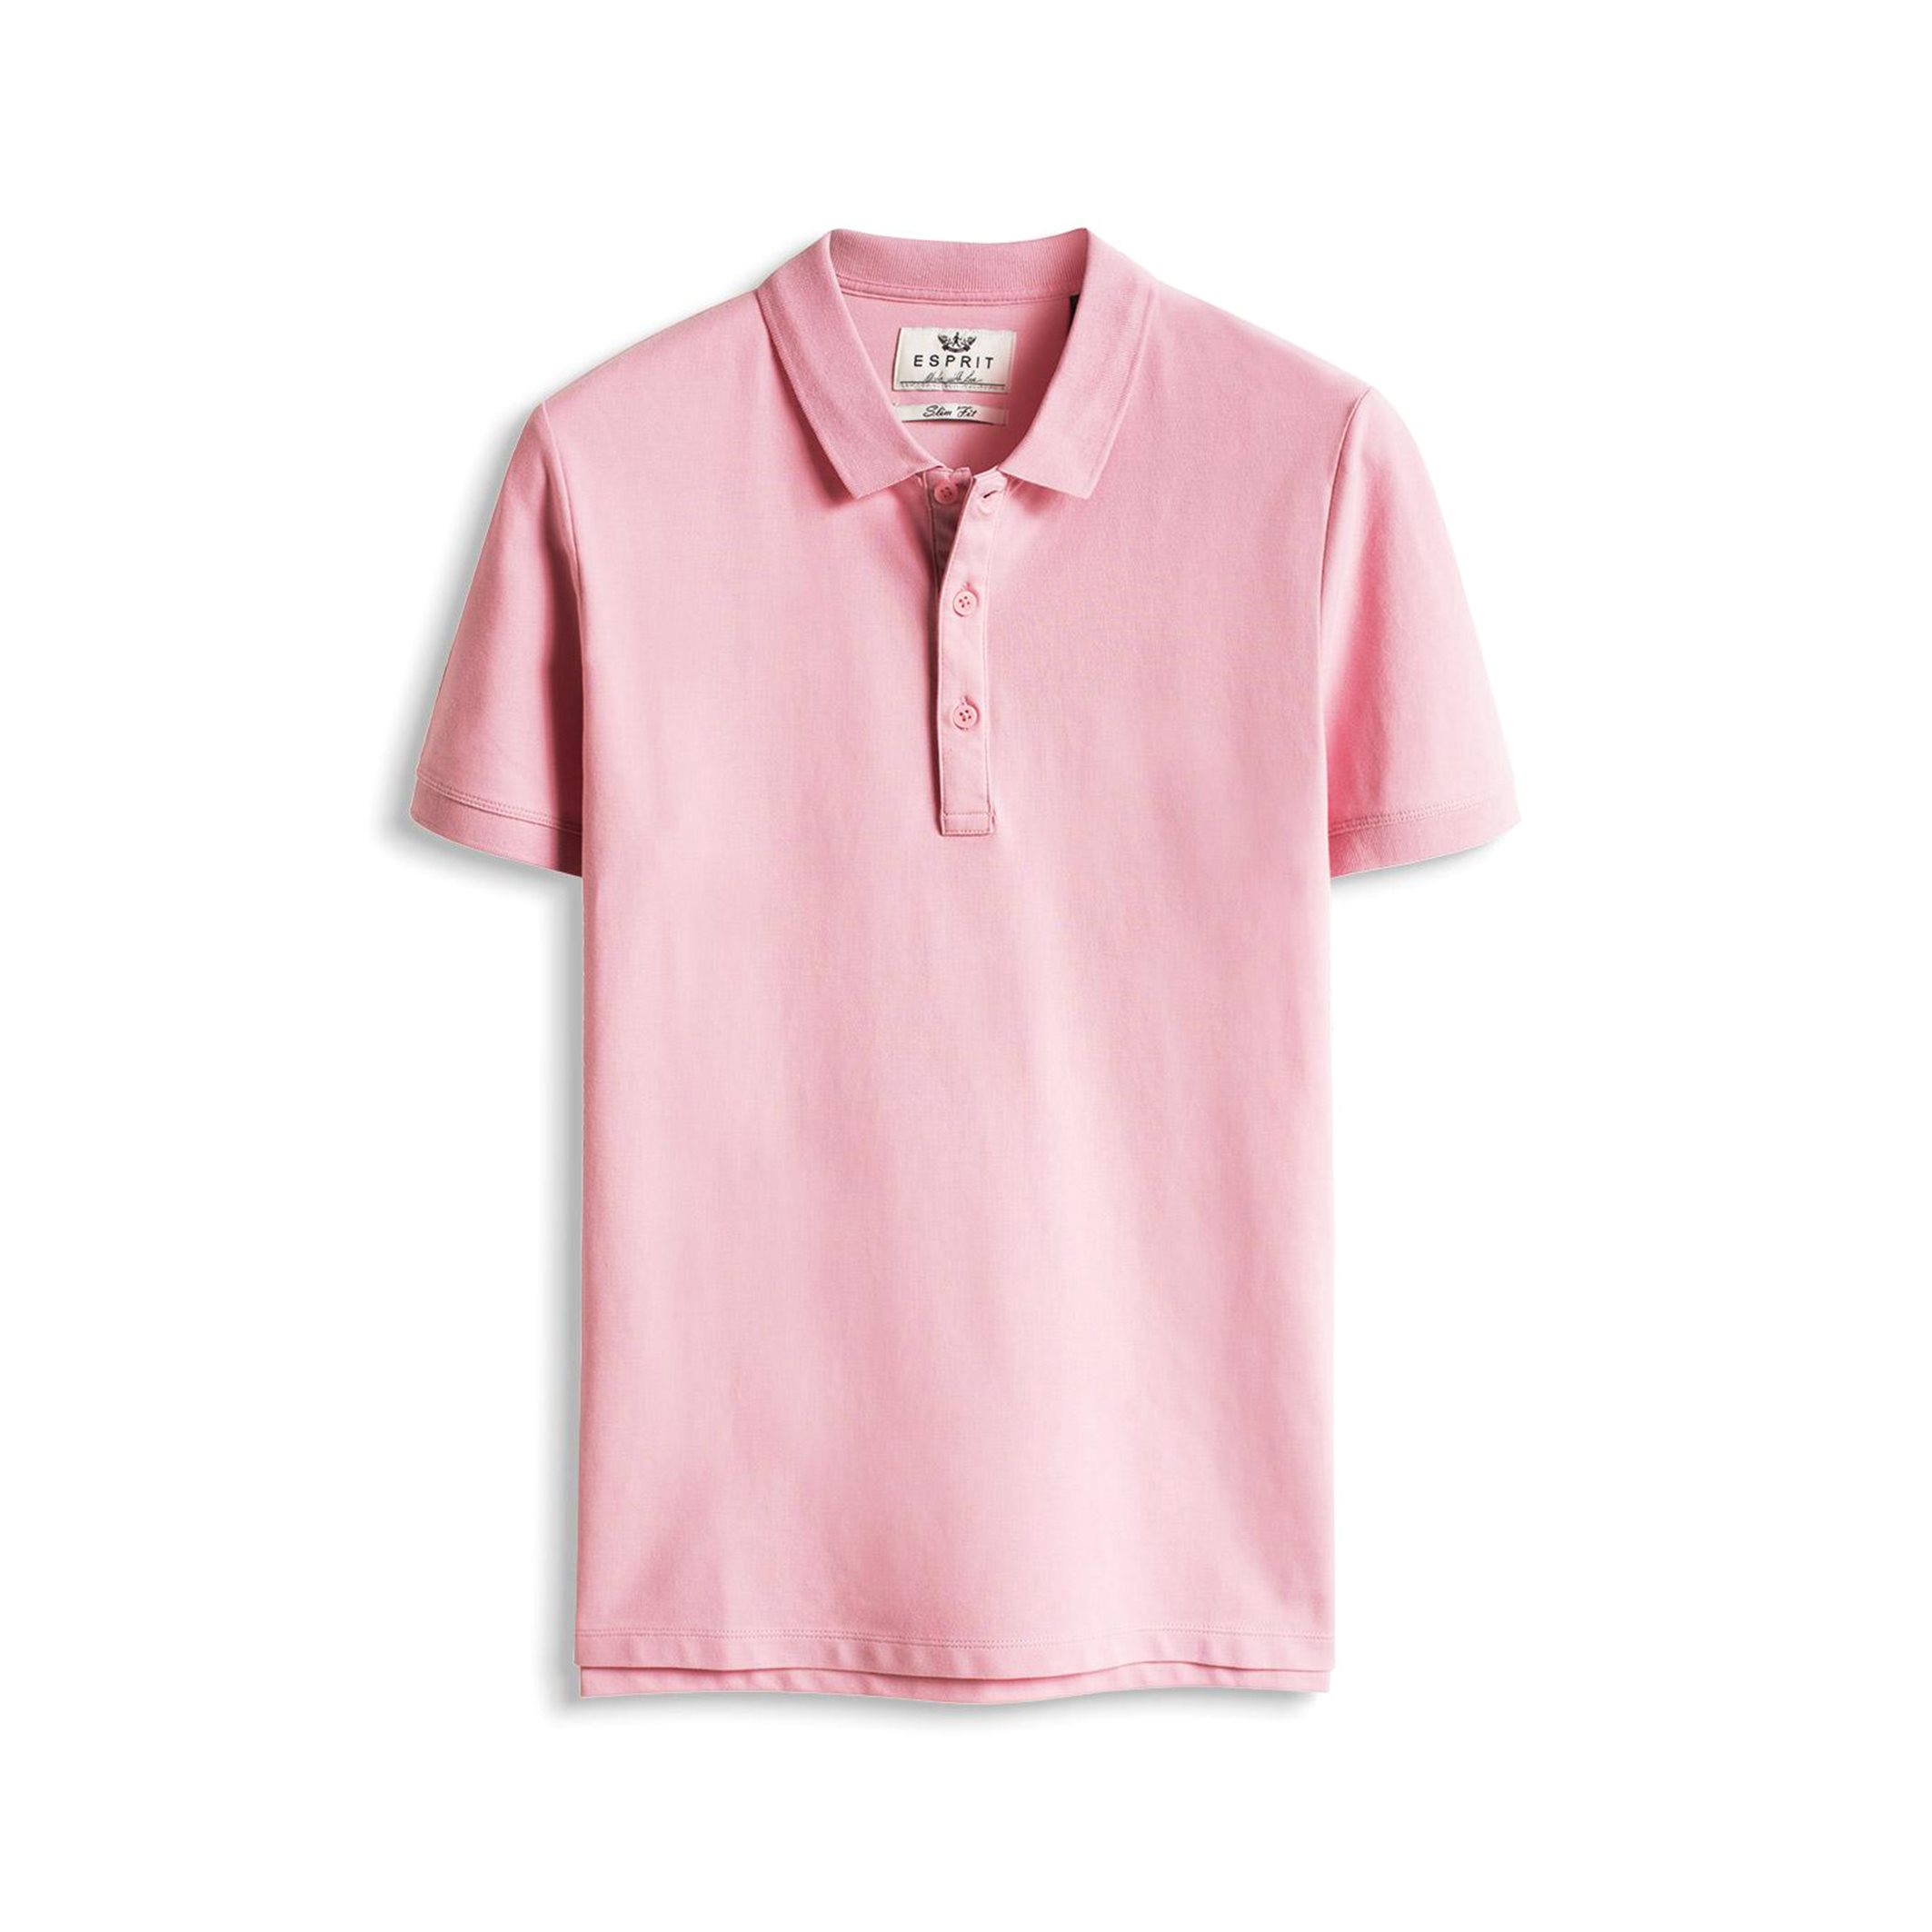 Lyst Esprit Short Sleeved Cotton Piqu Polo Shirt In Pink For Men